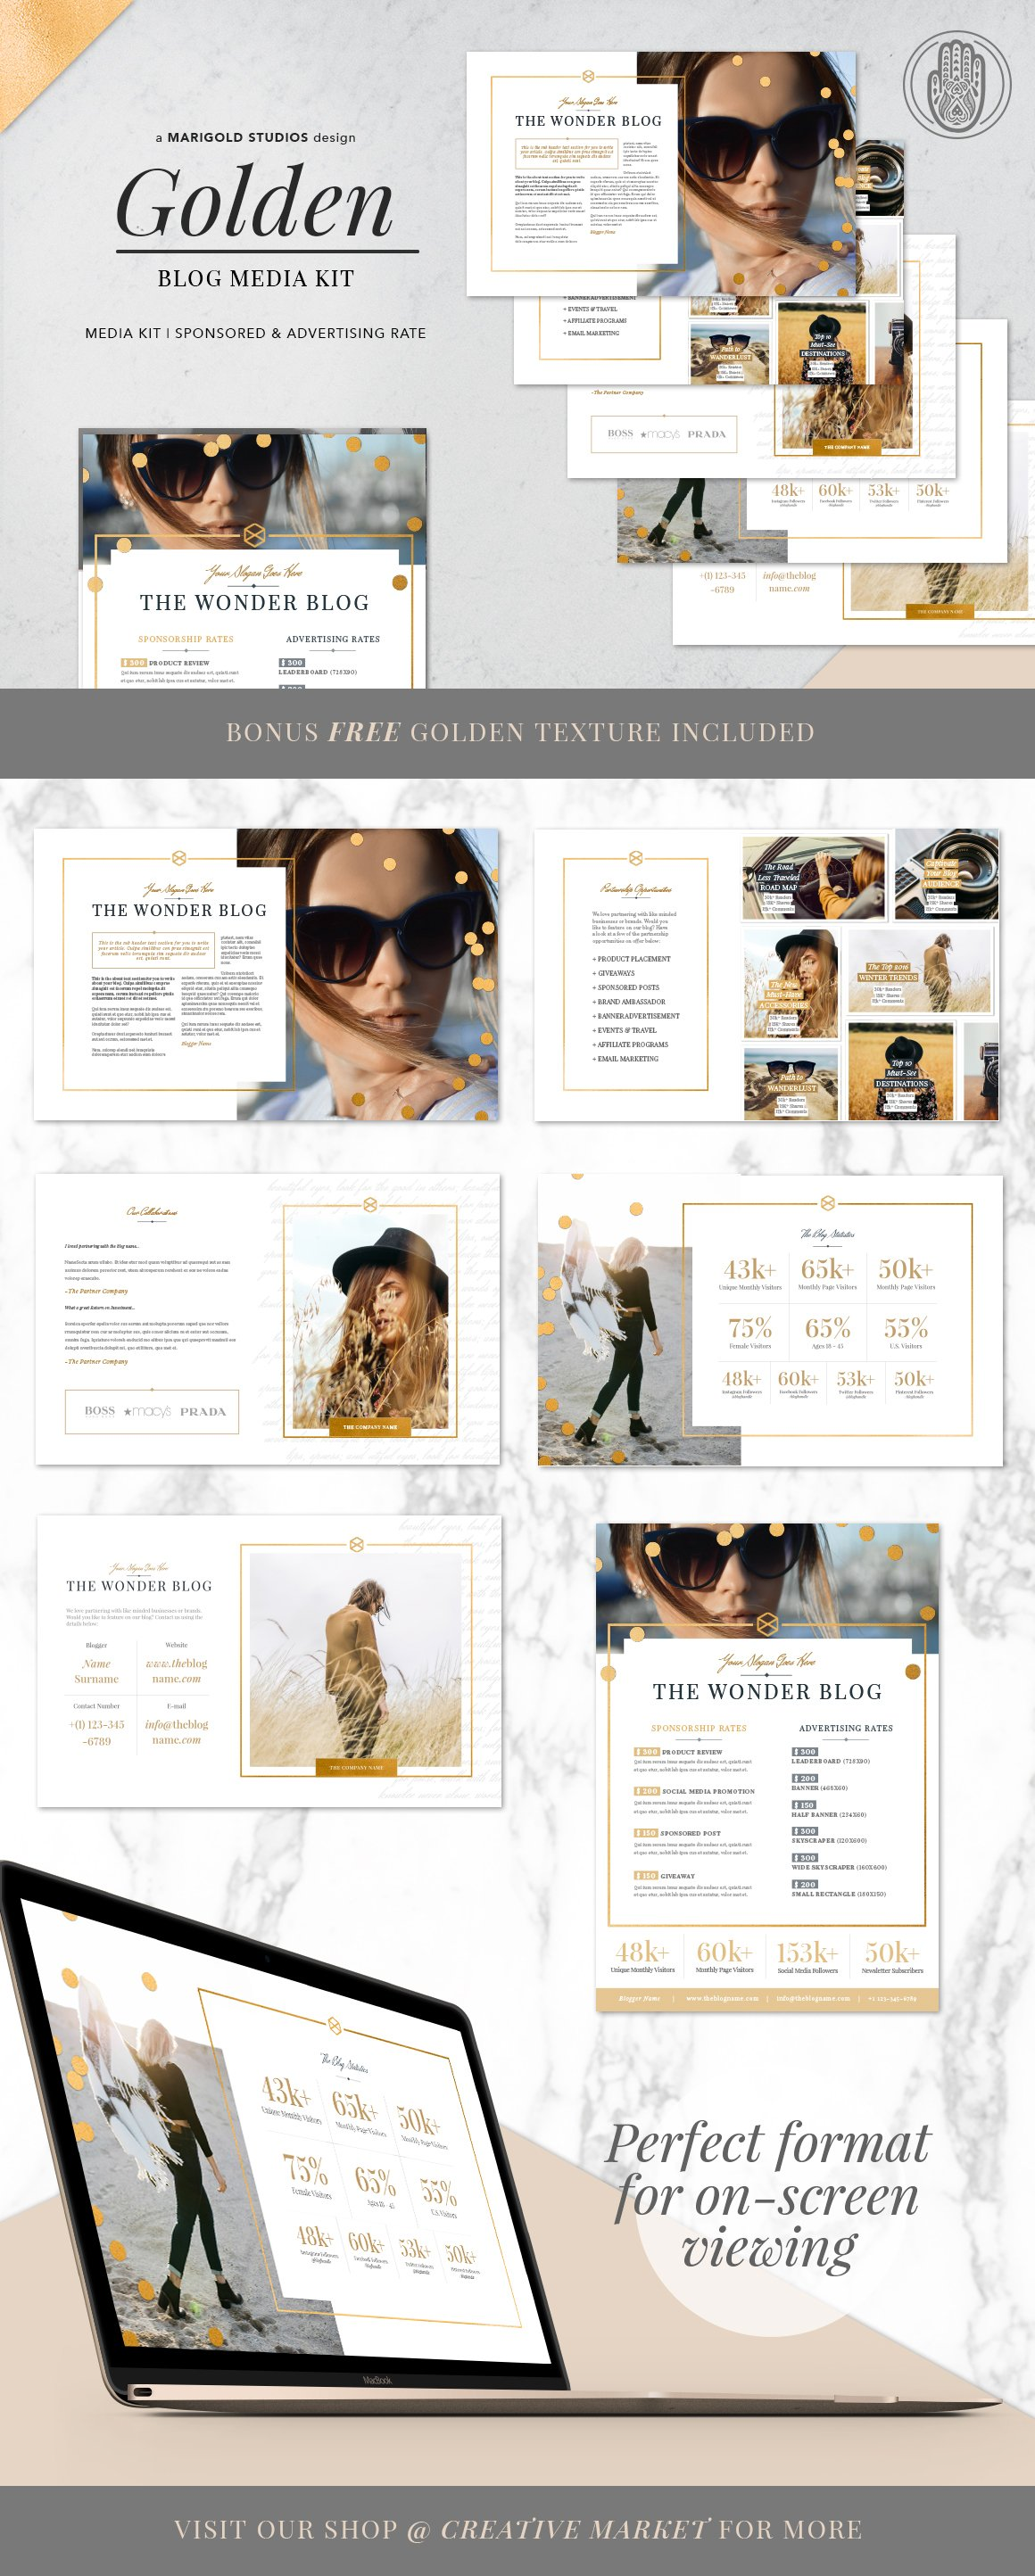 20 Media Kit Templates to Pitch Your Blog to Brands and Journalists ...